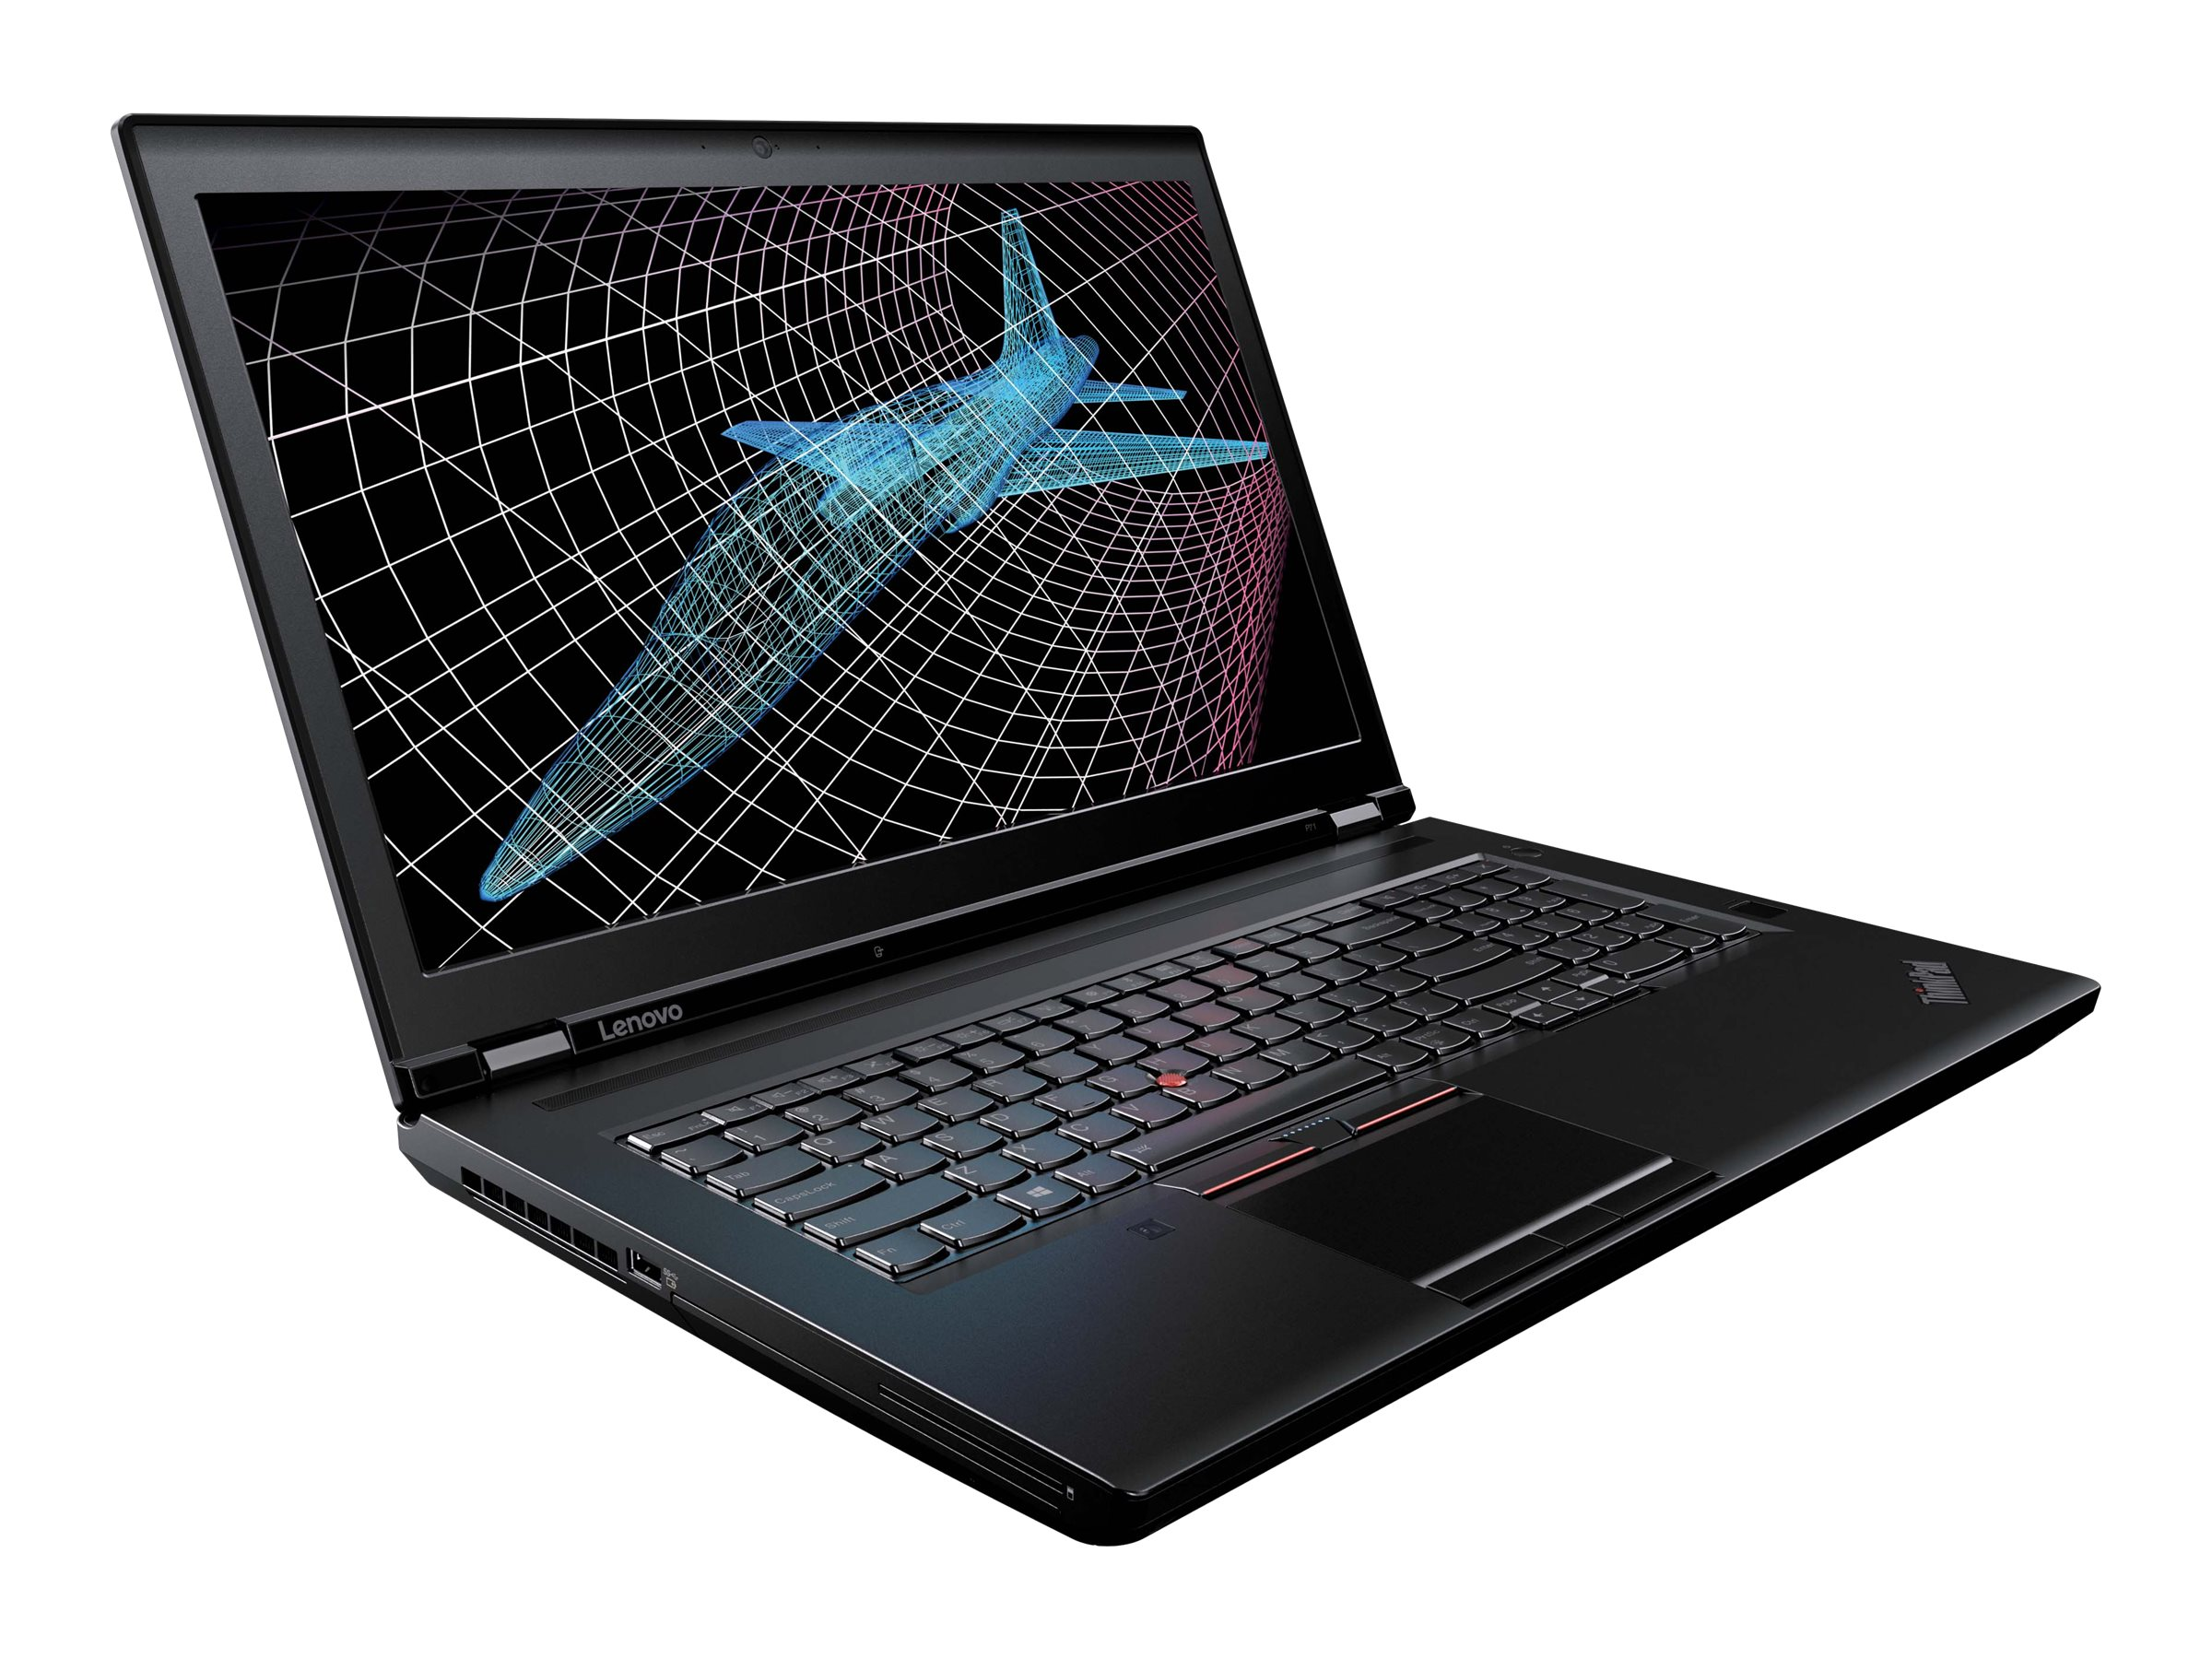 Lenovo TopSeller ThinkPad P71 Core i7-7700HQ 2.8GHz 8GB 500GB ac BT FR M620M 17.3 FHD W10P64, 20HK0013US